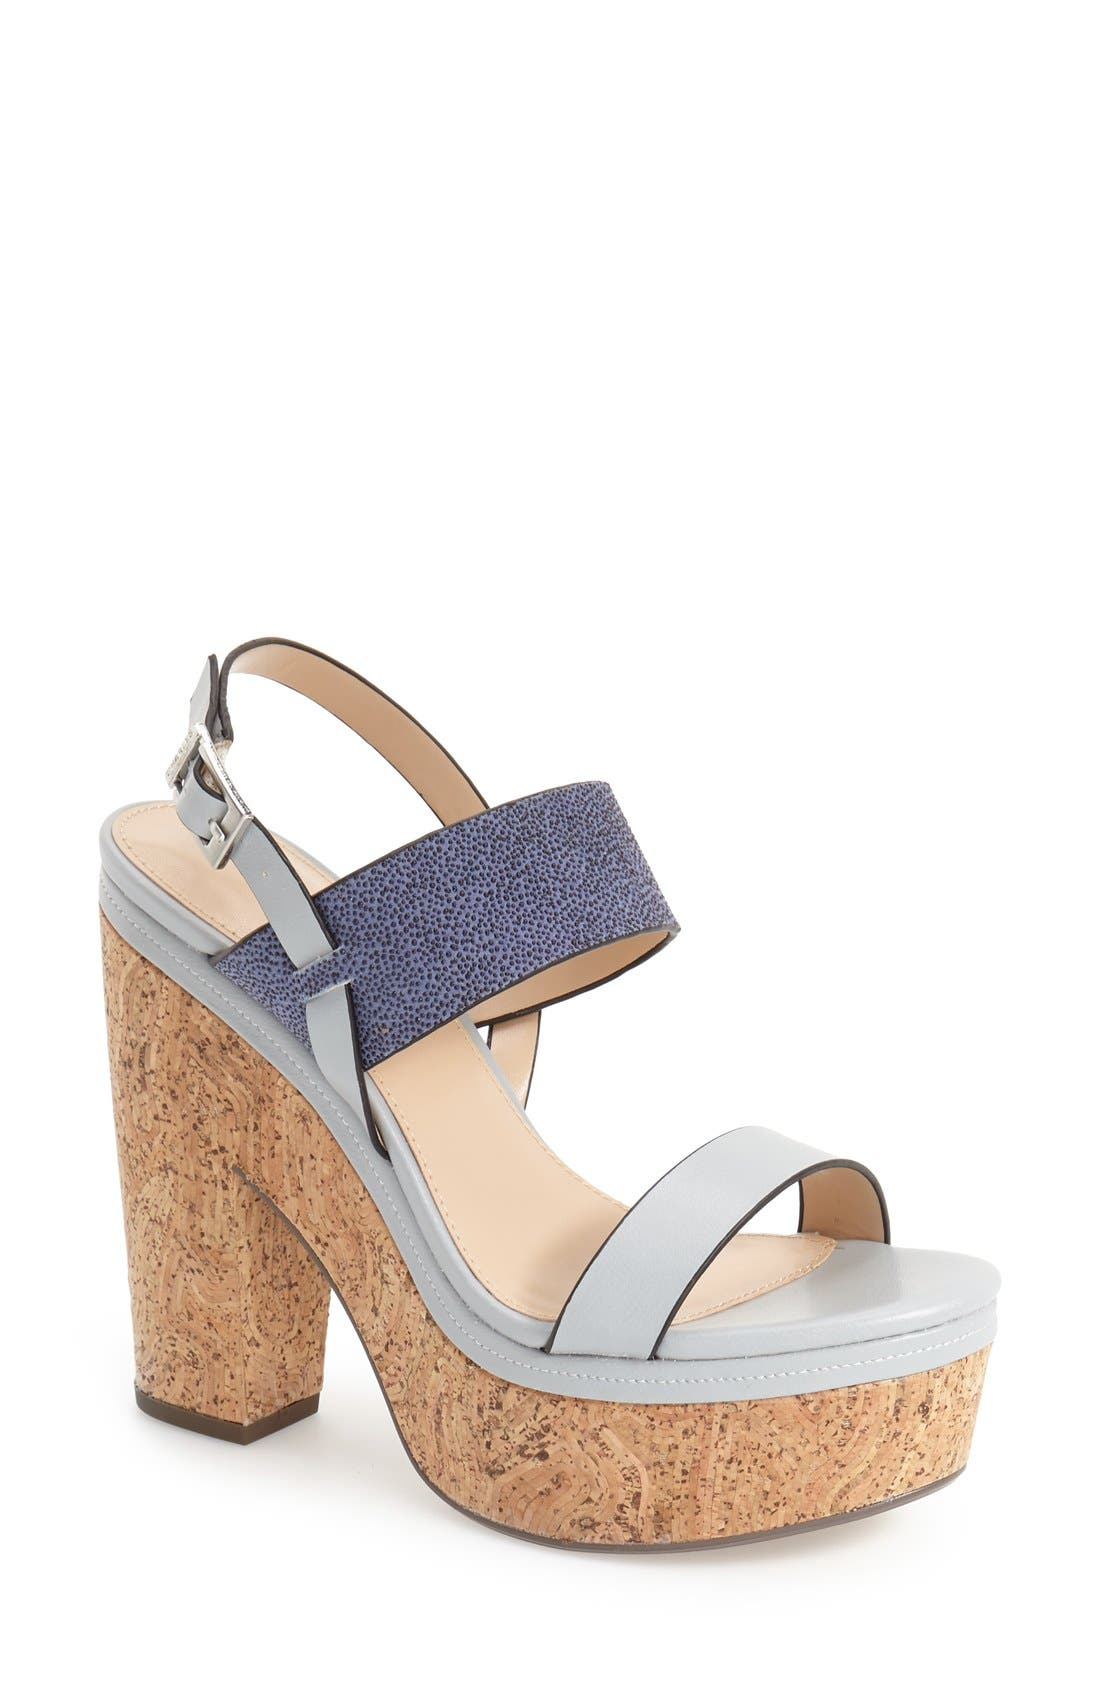 Main Image - Charles by Charles David 'Jangle' Platform Sandal (Women)